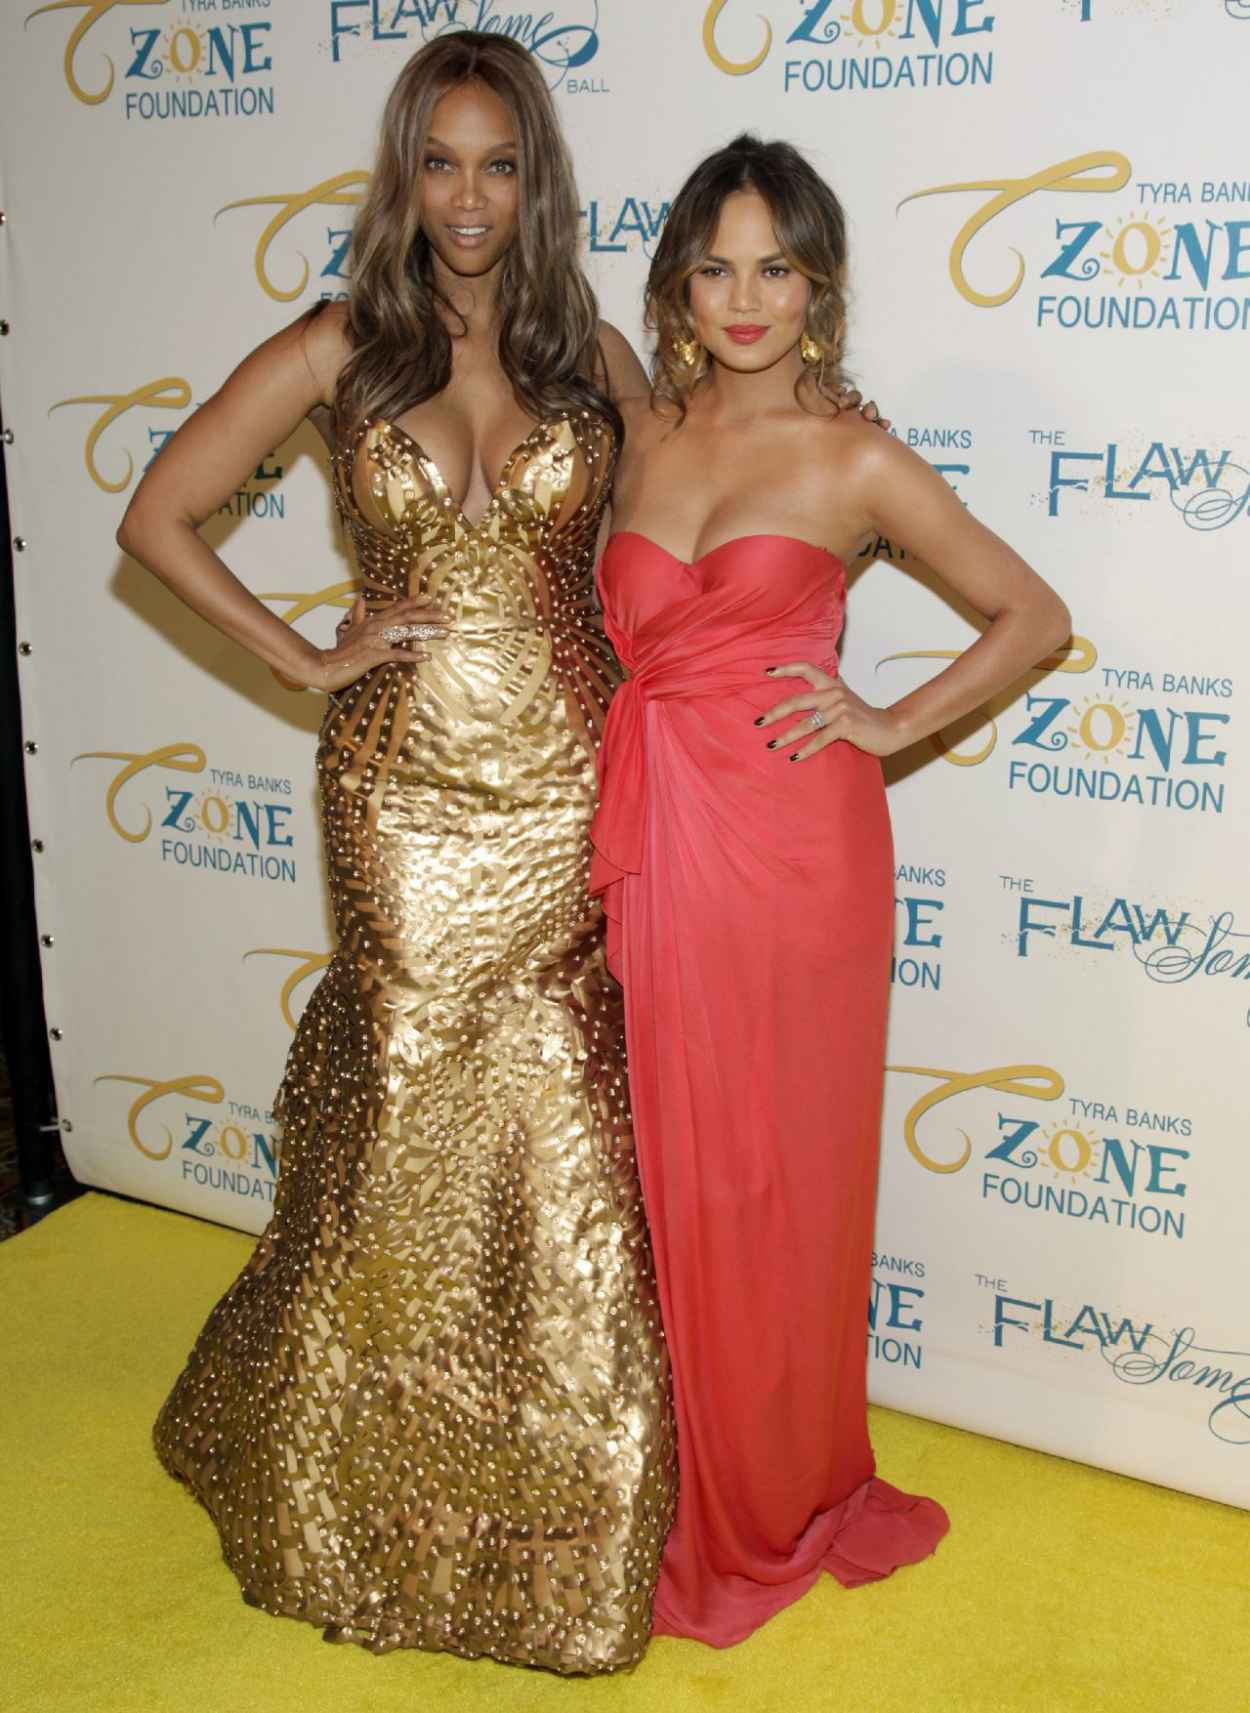 Tyra Banks & Chrissy Teigen - The Flawsome Ball - May 2015-1